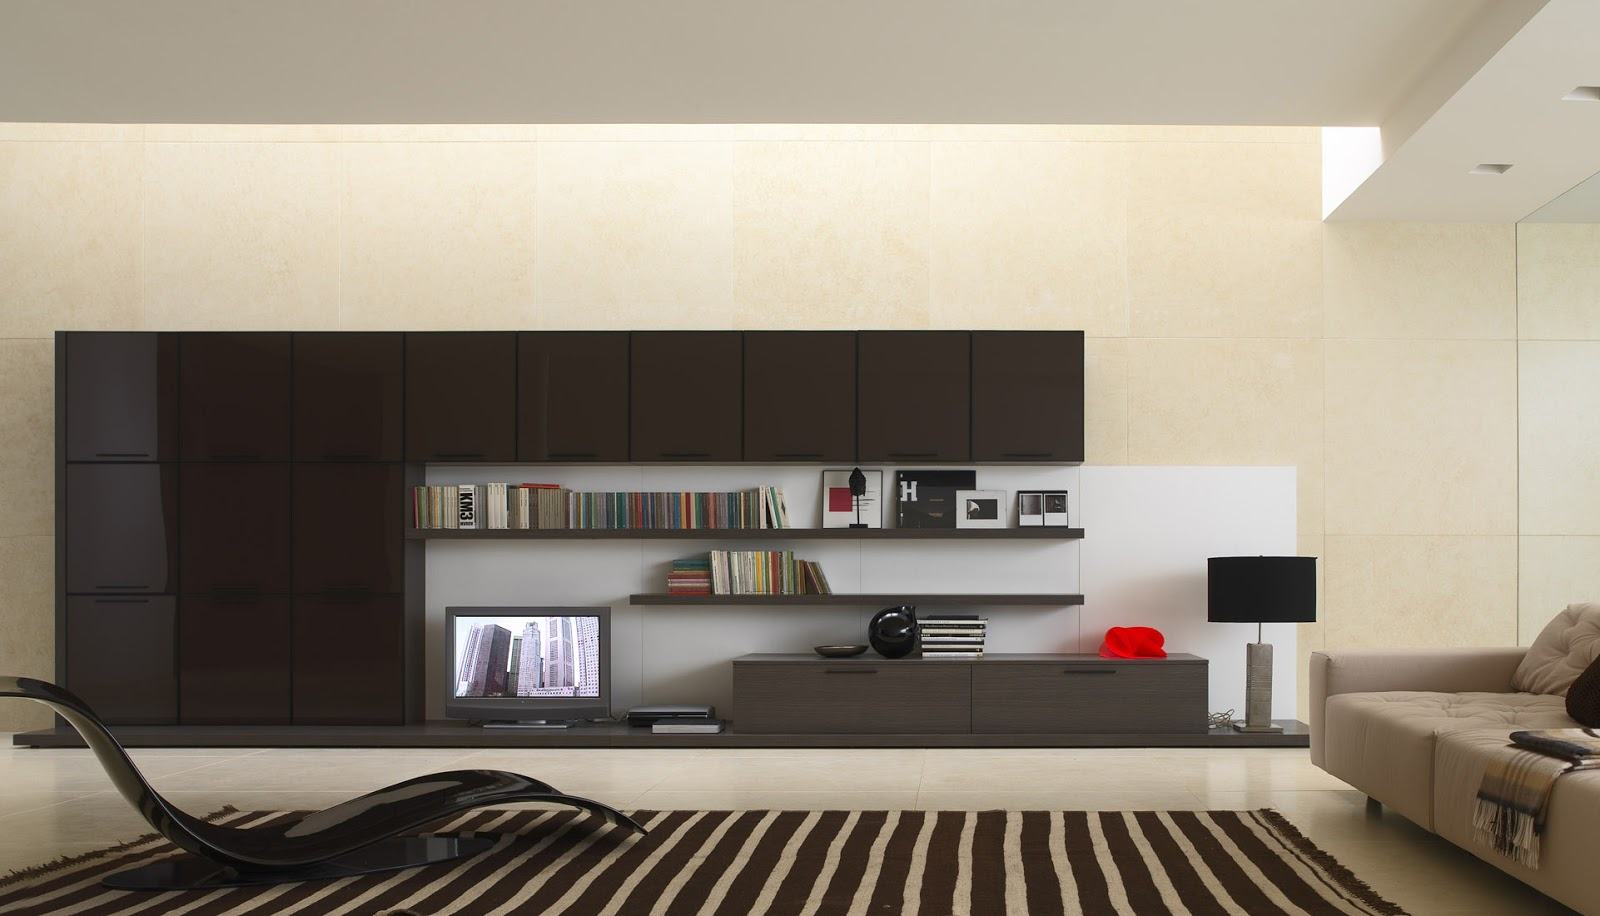 Posted 11th January 2013 by MG khan. Tv Lounge Interior Design Ideas   Awesome Interior